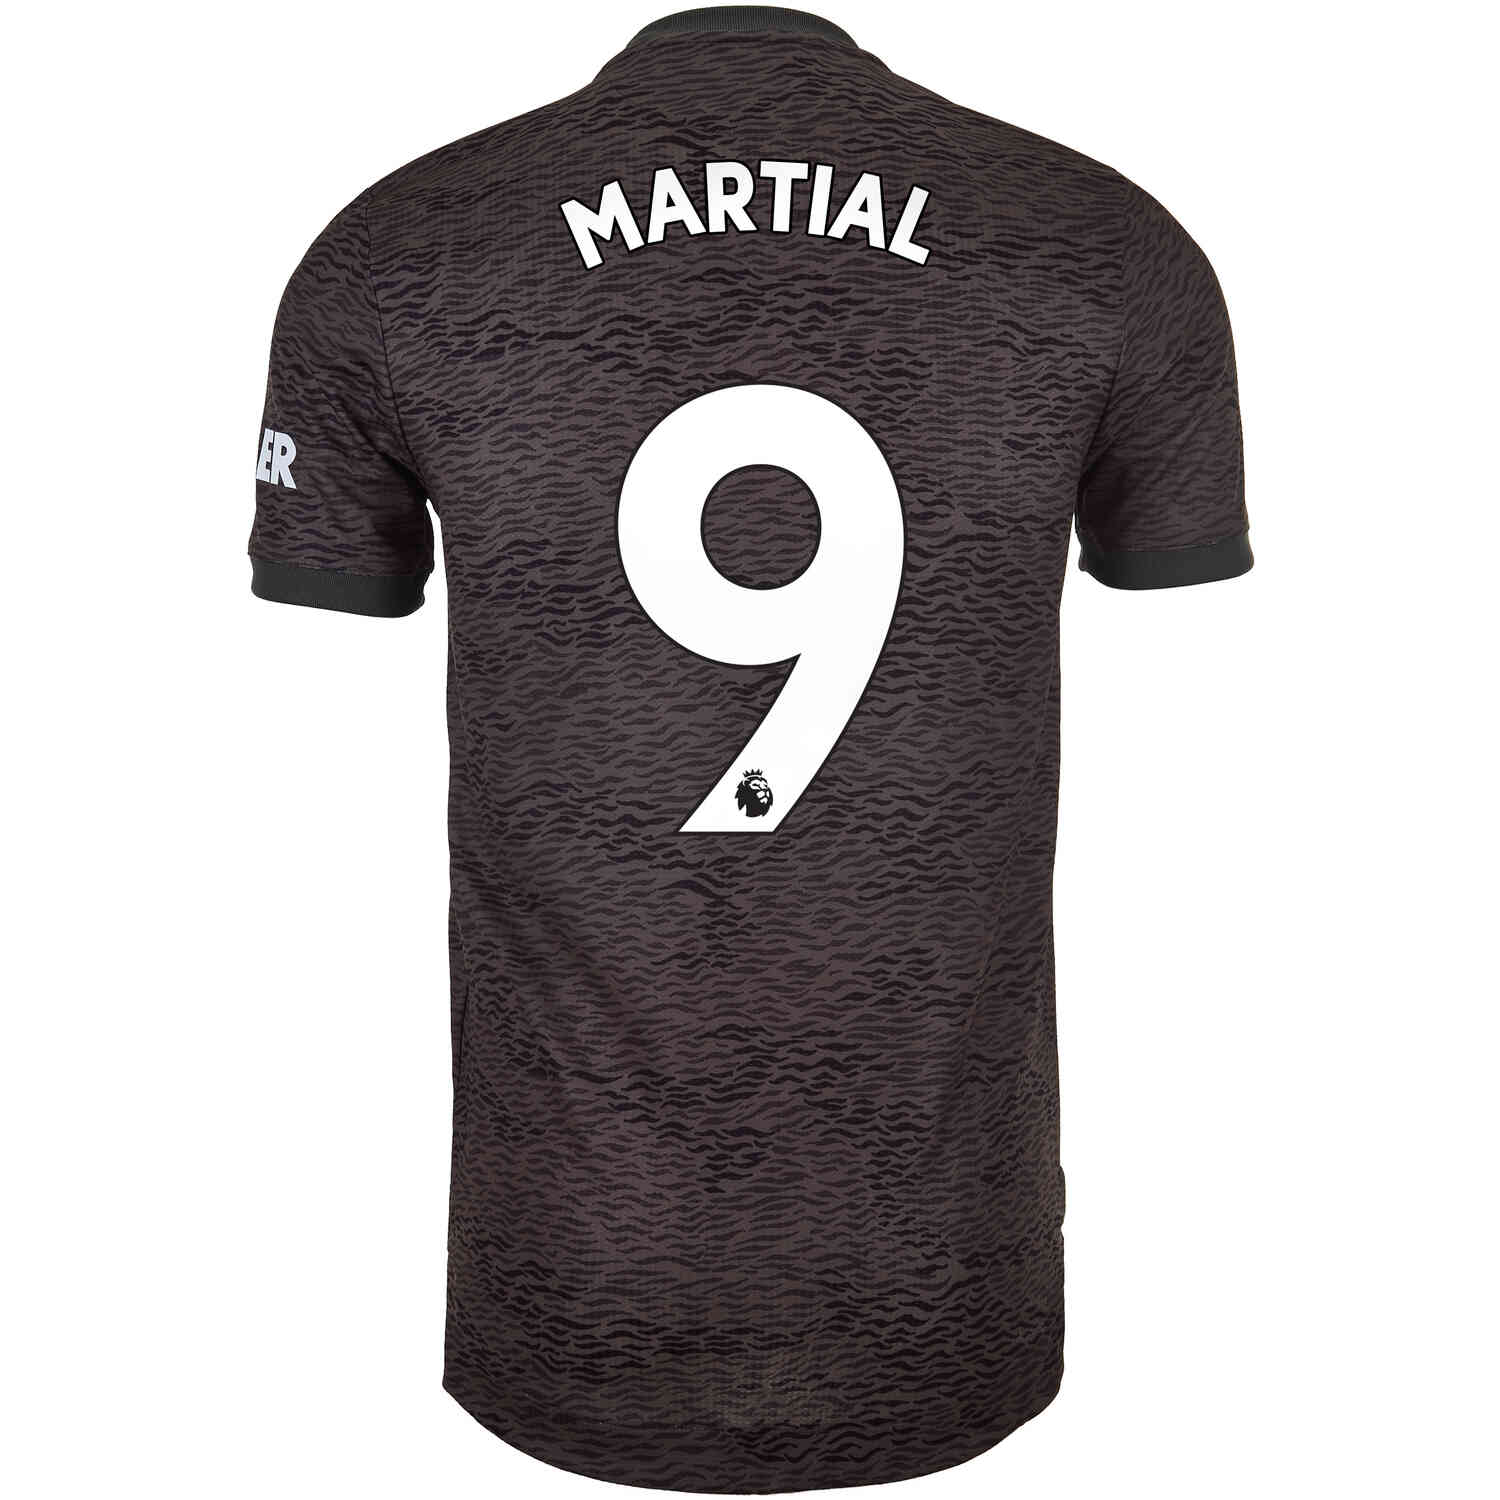 2020/21 adidas Anthony Martial Manchester United Away ...